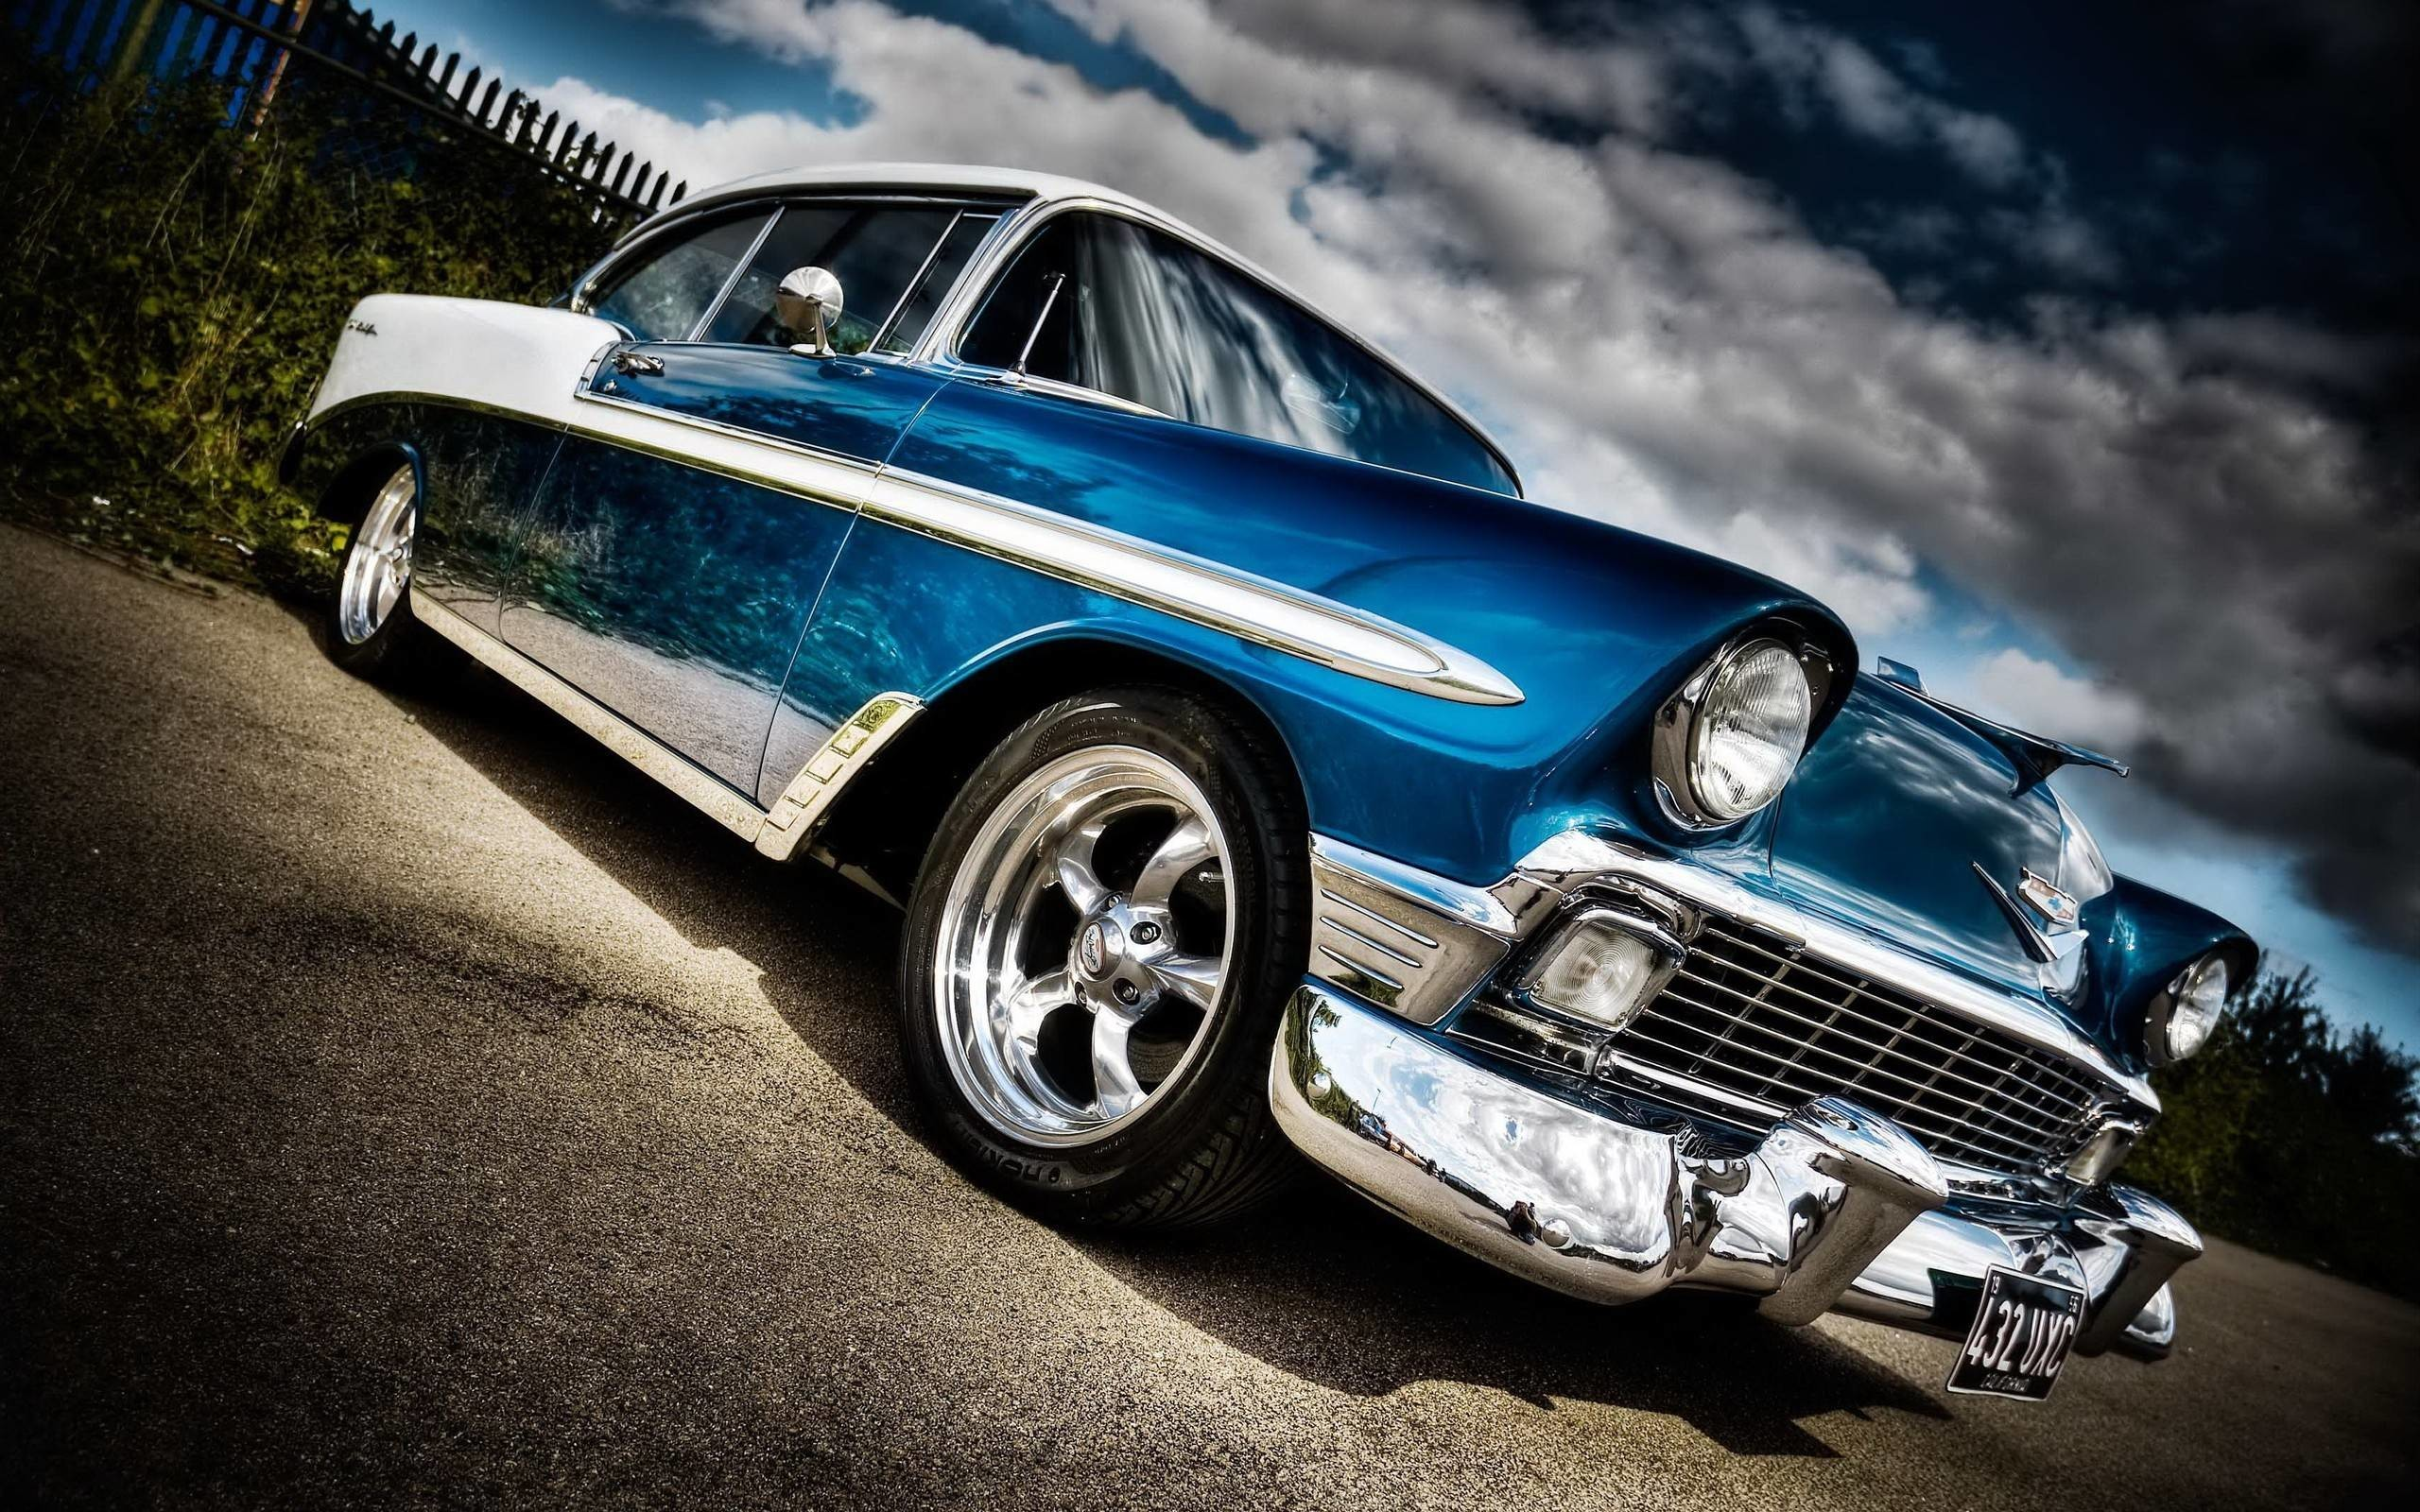 Classic Car Backgrounds 65 Images